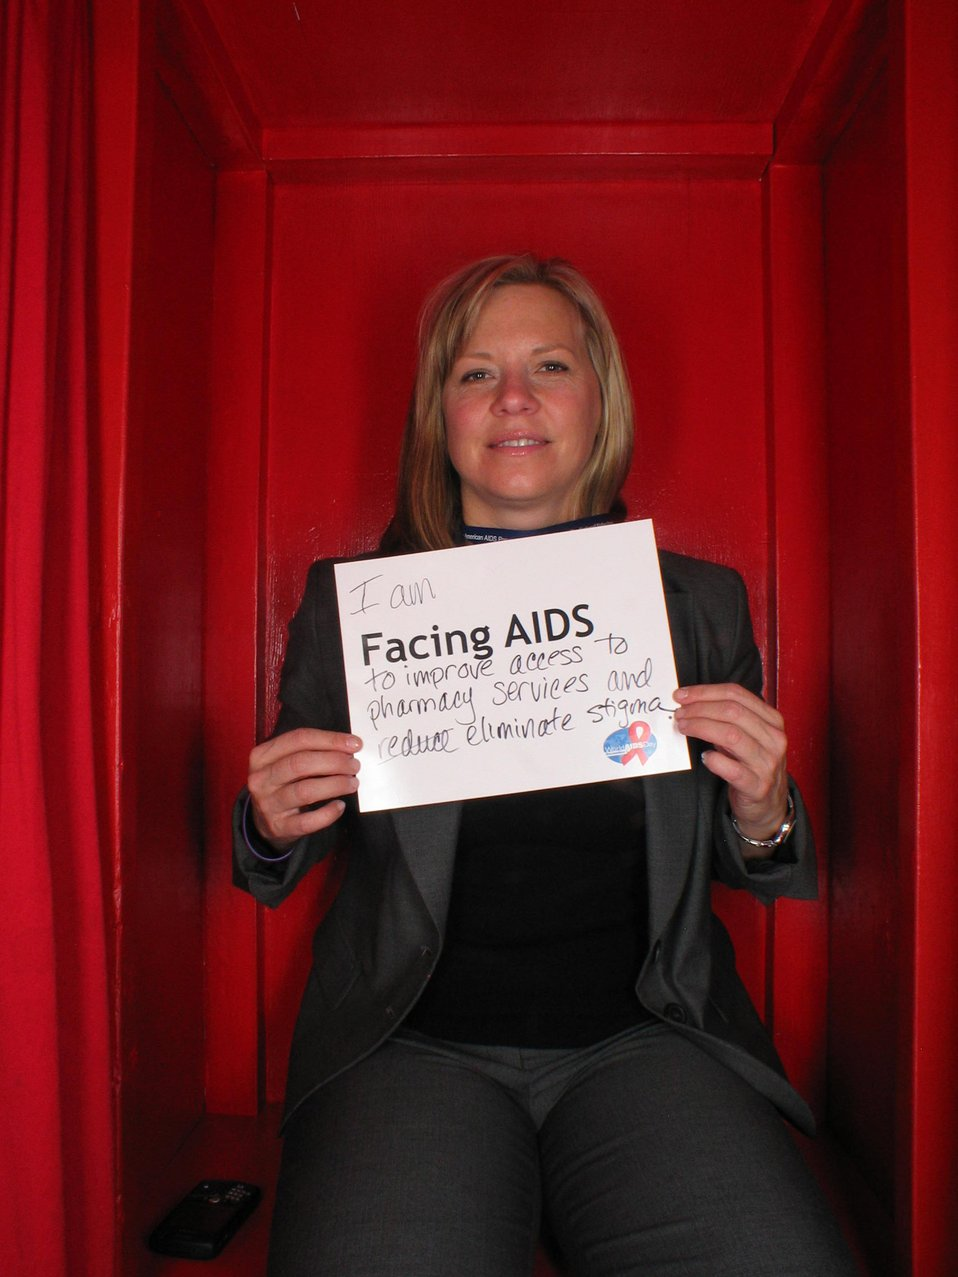 I am Facing AIDS to improve access to pharmacy services and reduce eliminate stigma.